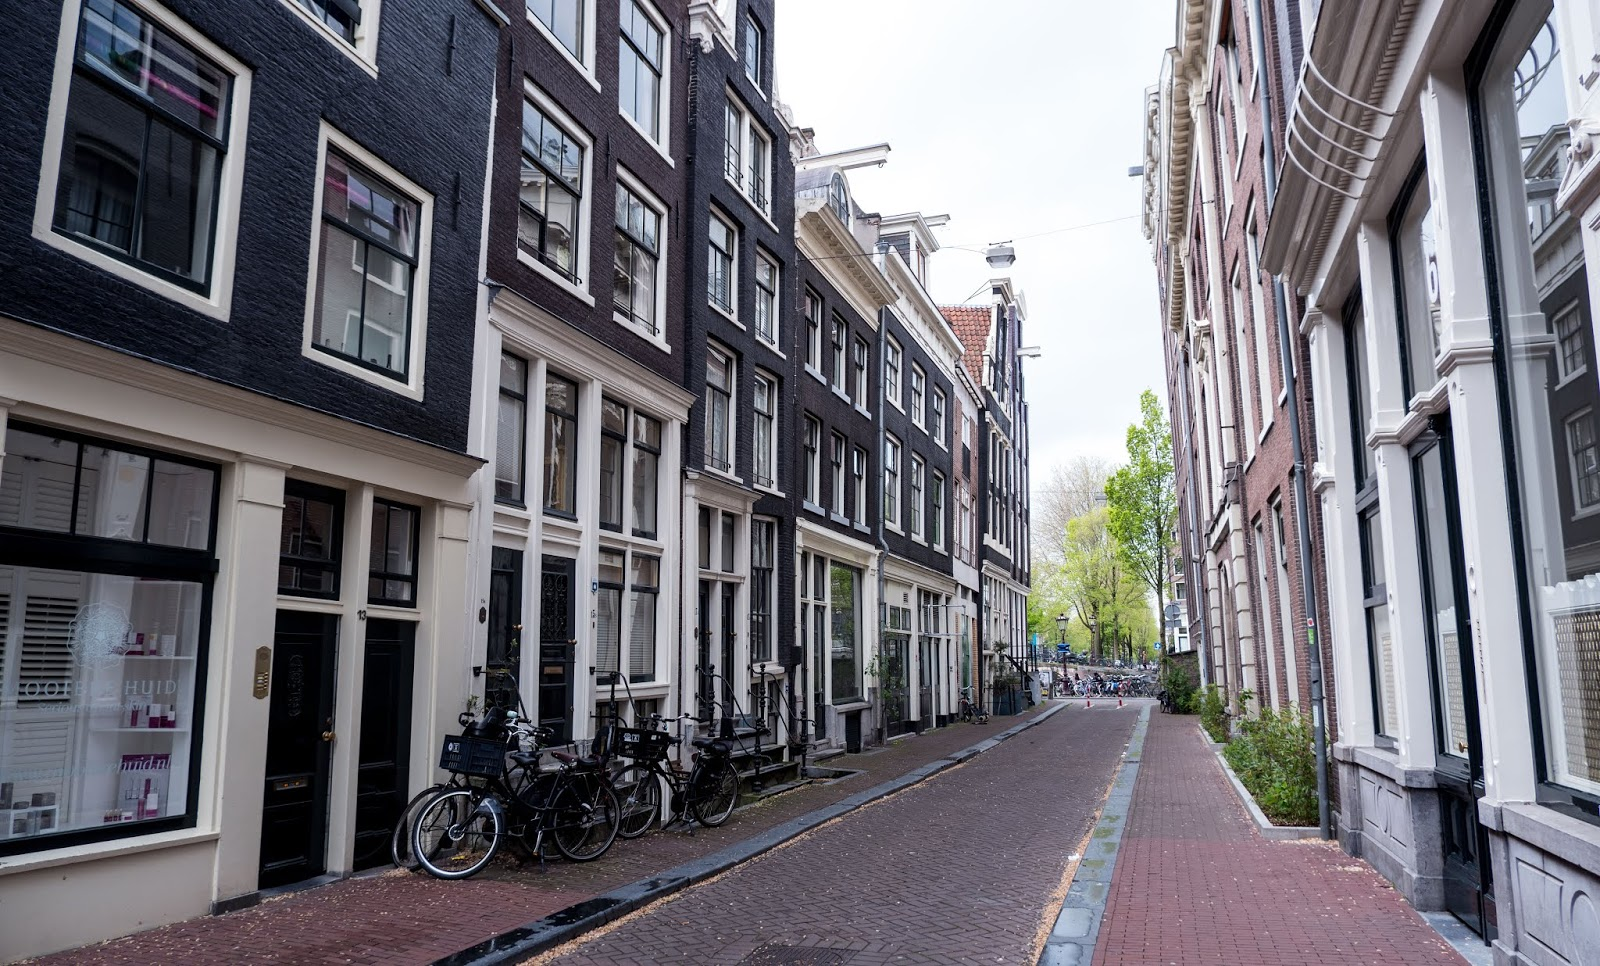 A street in Amsterdam, The Netherlands